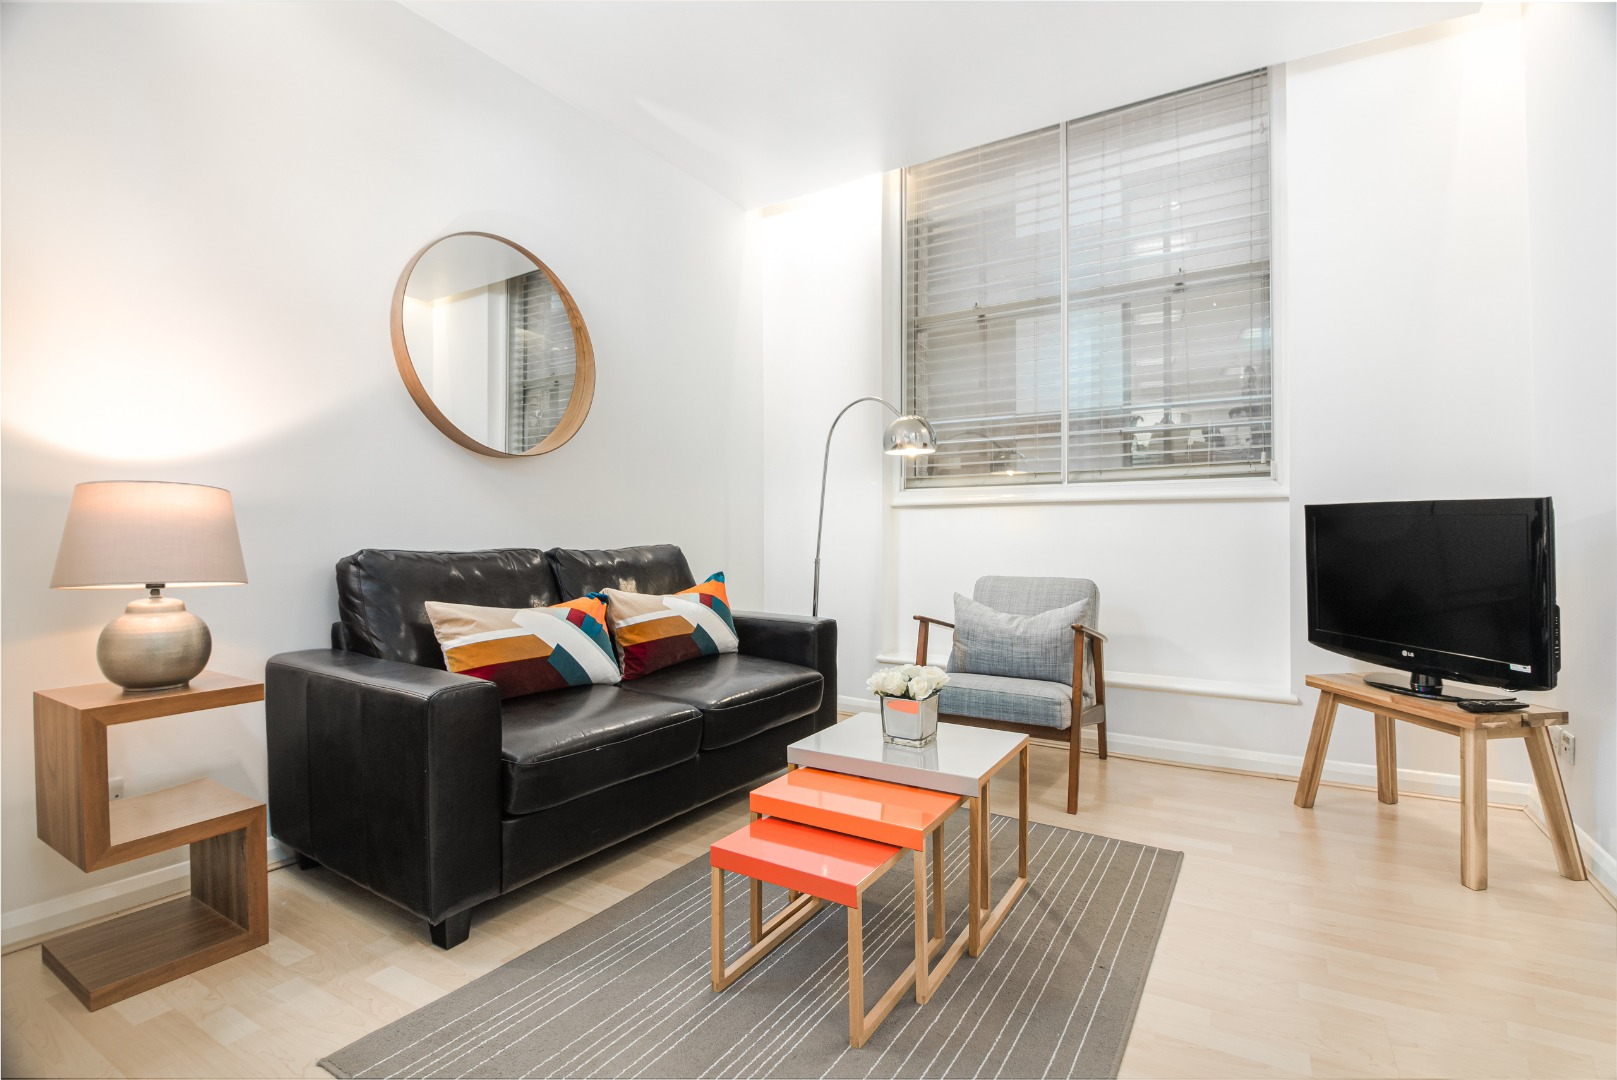 Make yourself feel right at home in this lovely one bedroom apartment!